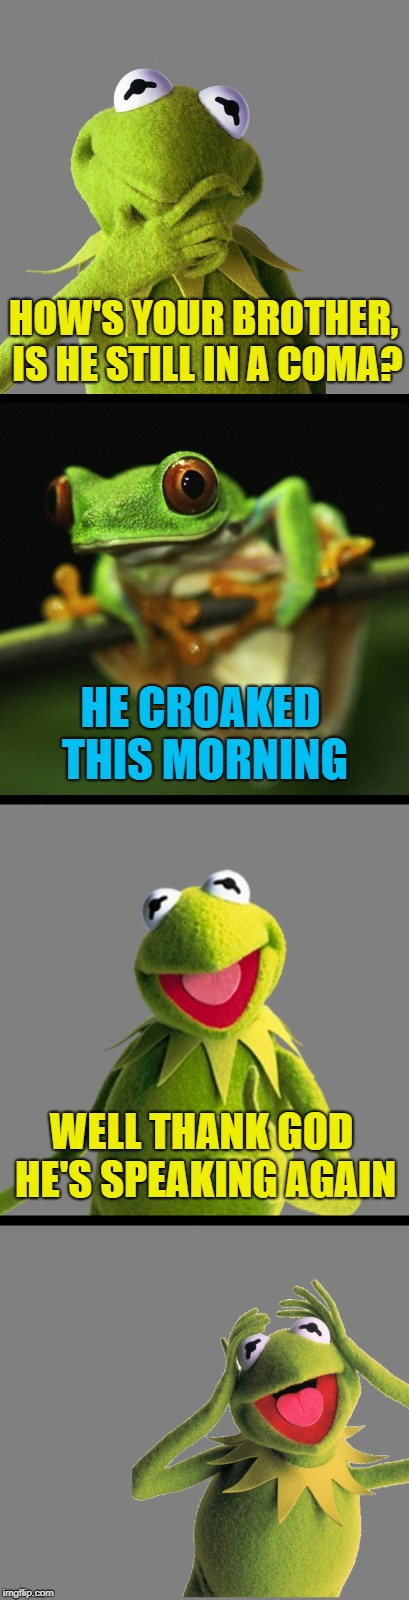 His Brother is in Intensive Ker-mit   (Frog Week June 4-10, a JBmemegeek & giveuahint event!) |  HOW'S YOUR BROTHER, IS HE STILL IN A COMA? HE CROAKED THIS MORNING; WELL THANK GOD HE'S SPEAKING AGAIN | image tagged in bad pun kermit,bad pun frog,kermit,frog week | made w/ Imgflip meme maker